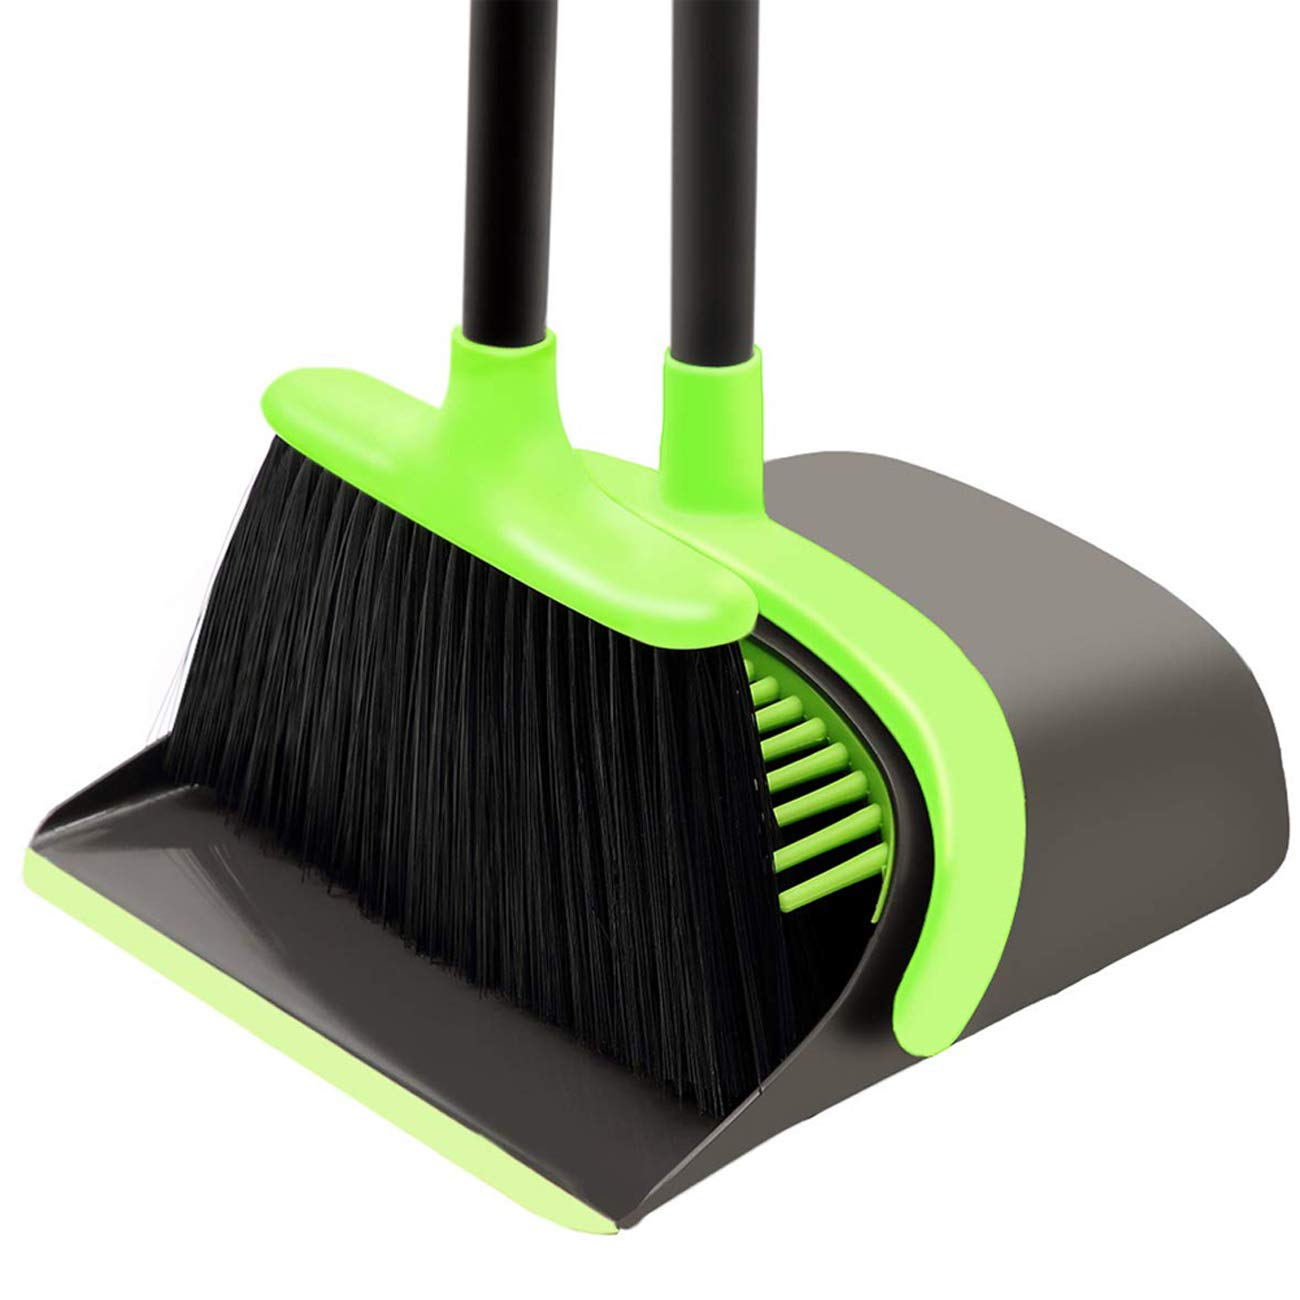 SANGFOR Broom and Dustpan Set  | Best Brooms